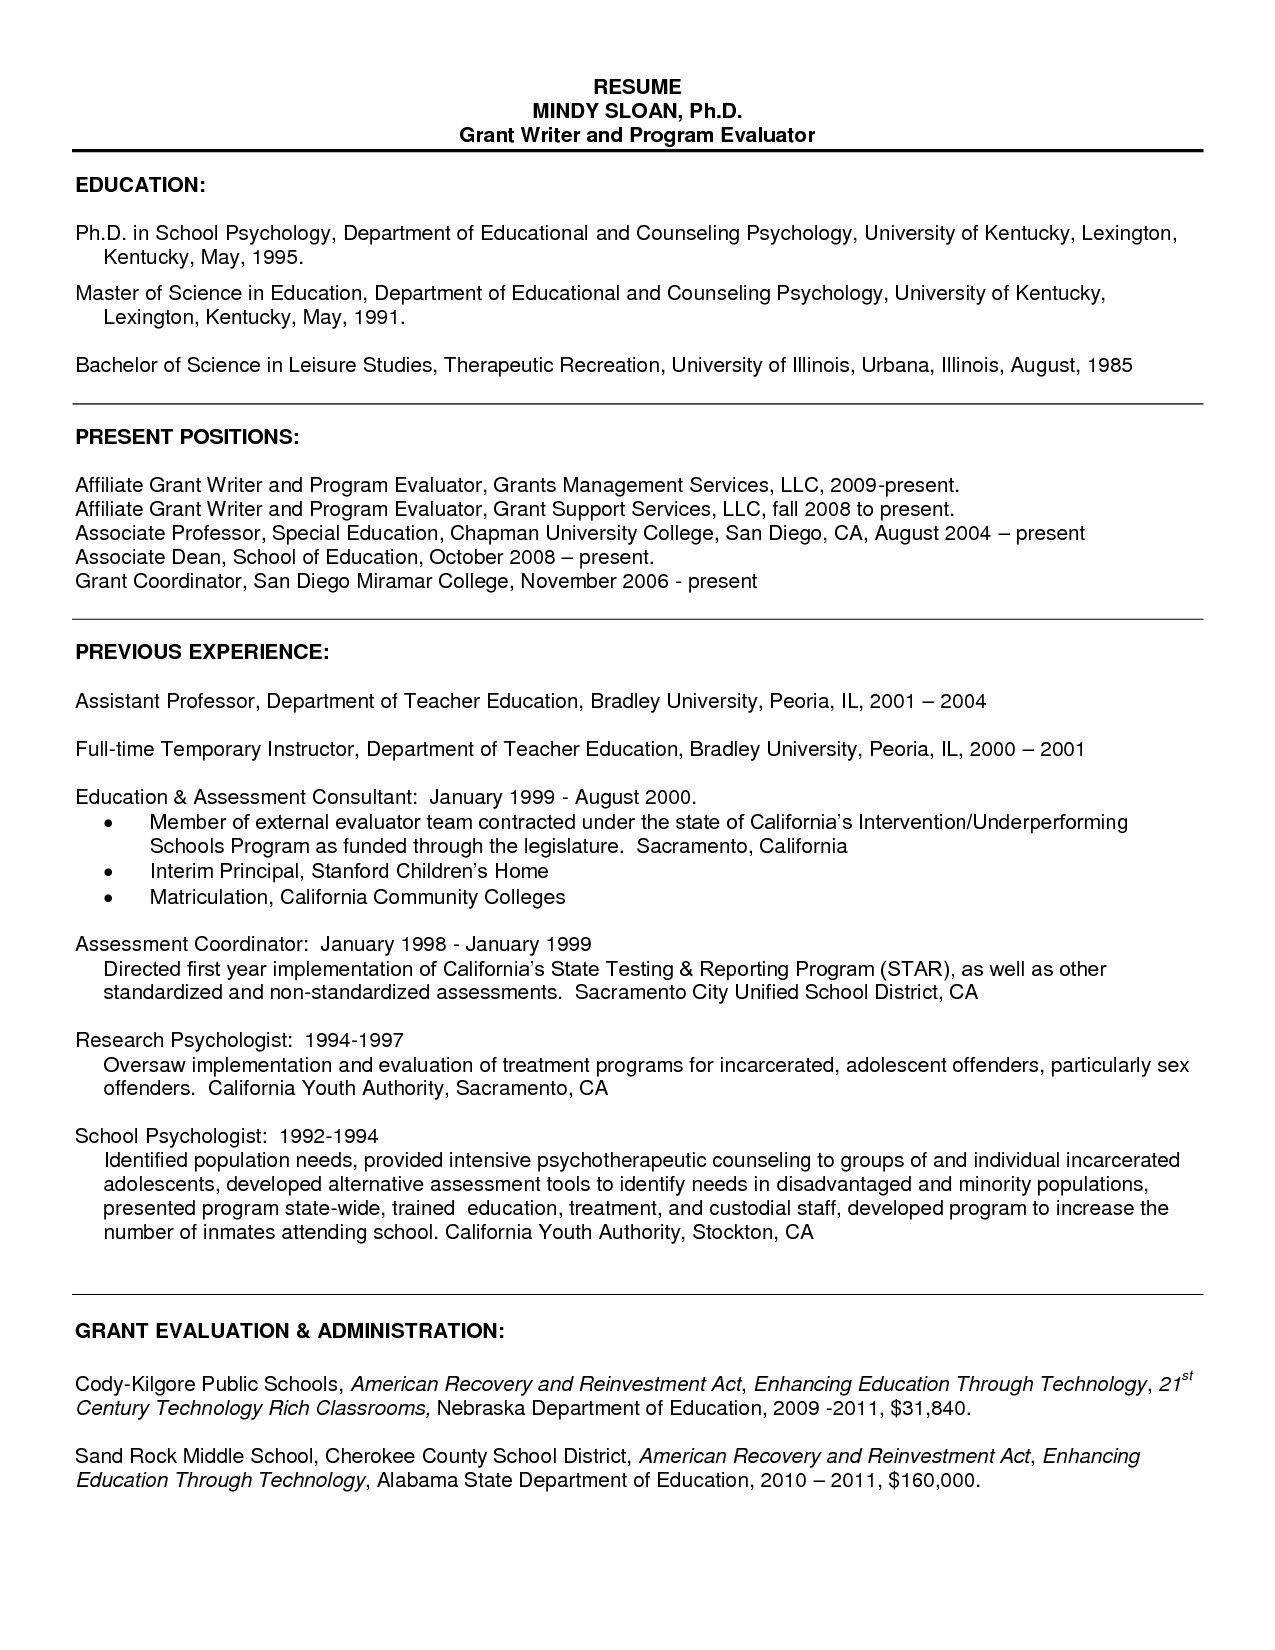 sample resume templates resume samples x resume samples resume sample for psychology graduate are examples we provide as reference to make correct and good quality resume also will give ideas and strategies to